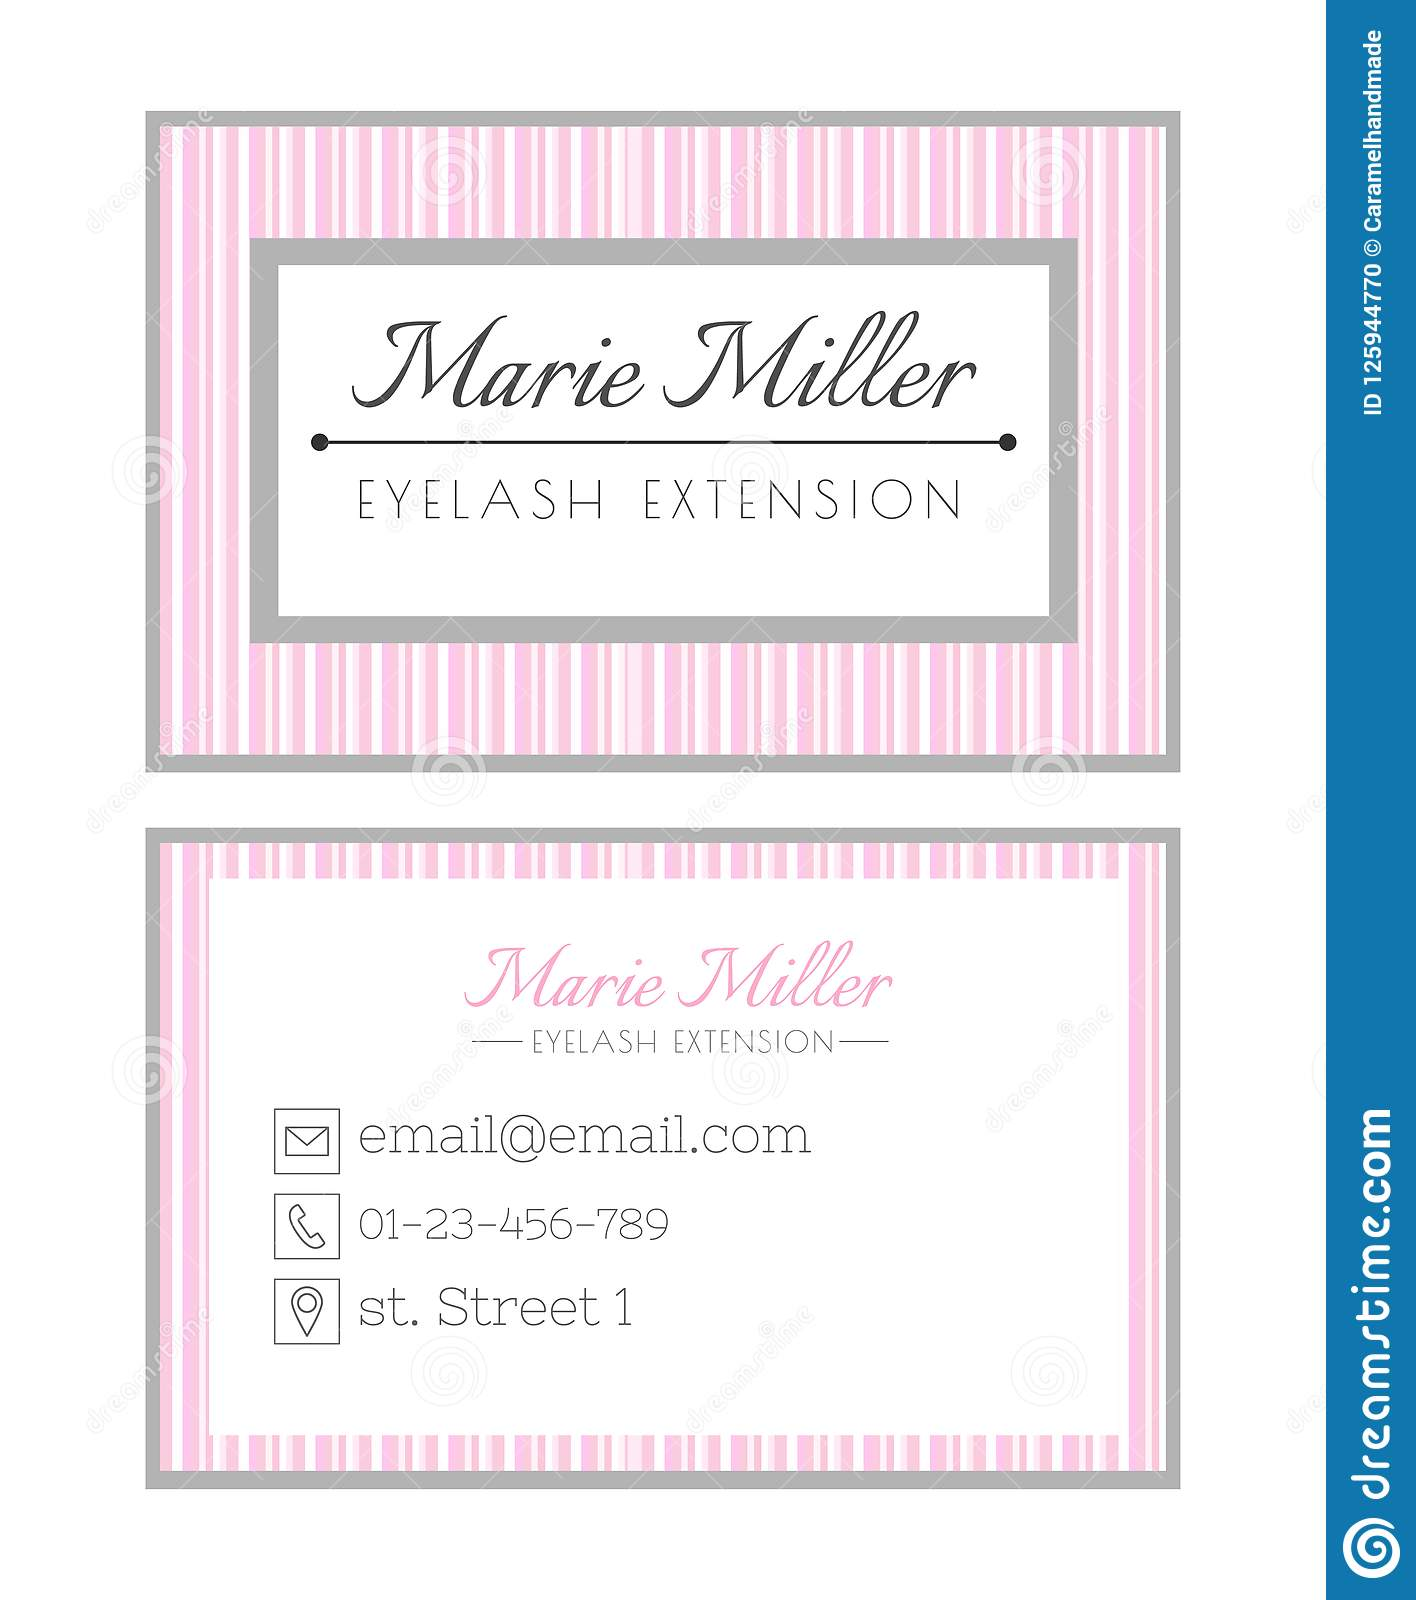 Business Card Template Design For Beauty Salon Services On Eyelash Extension Pink Striped Layout Stock Illustration Illustration Of Abstract Design 125944770